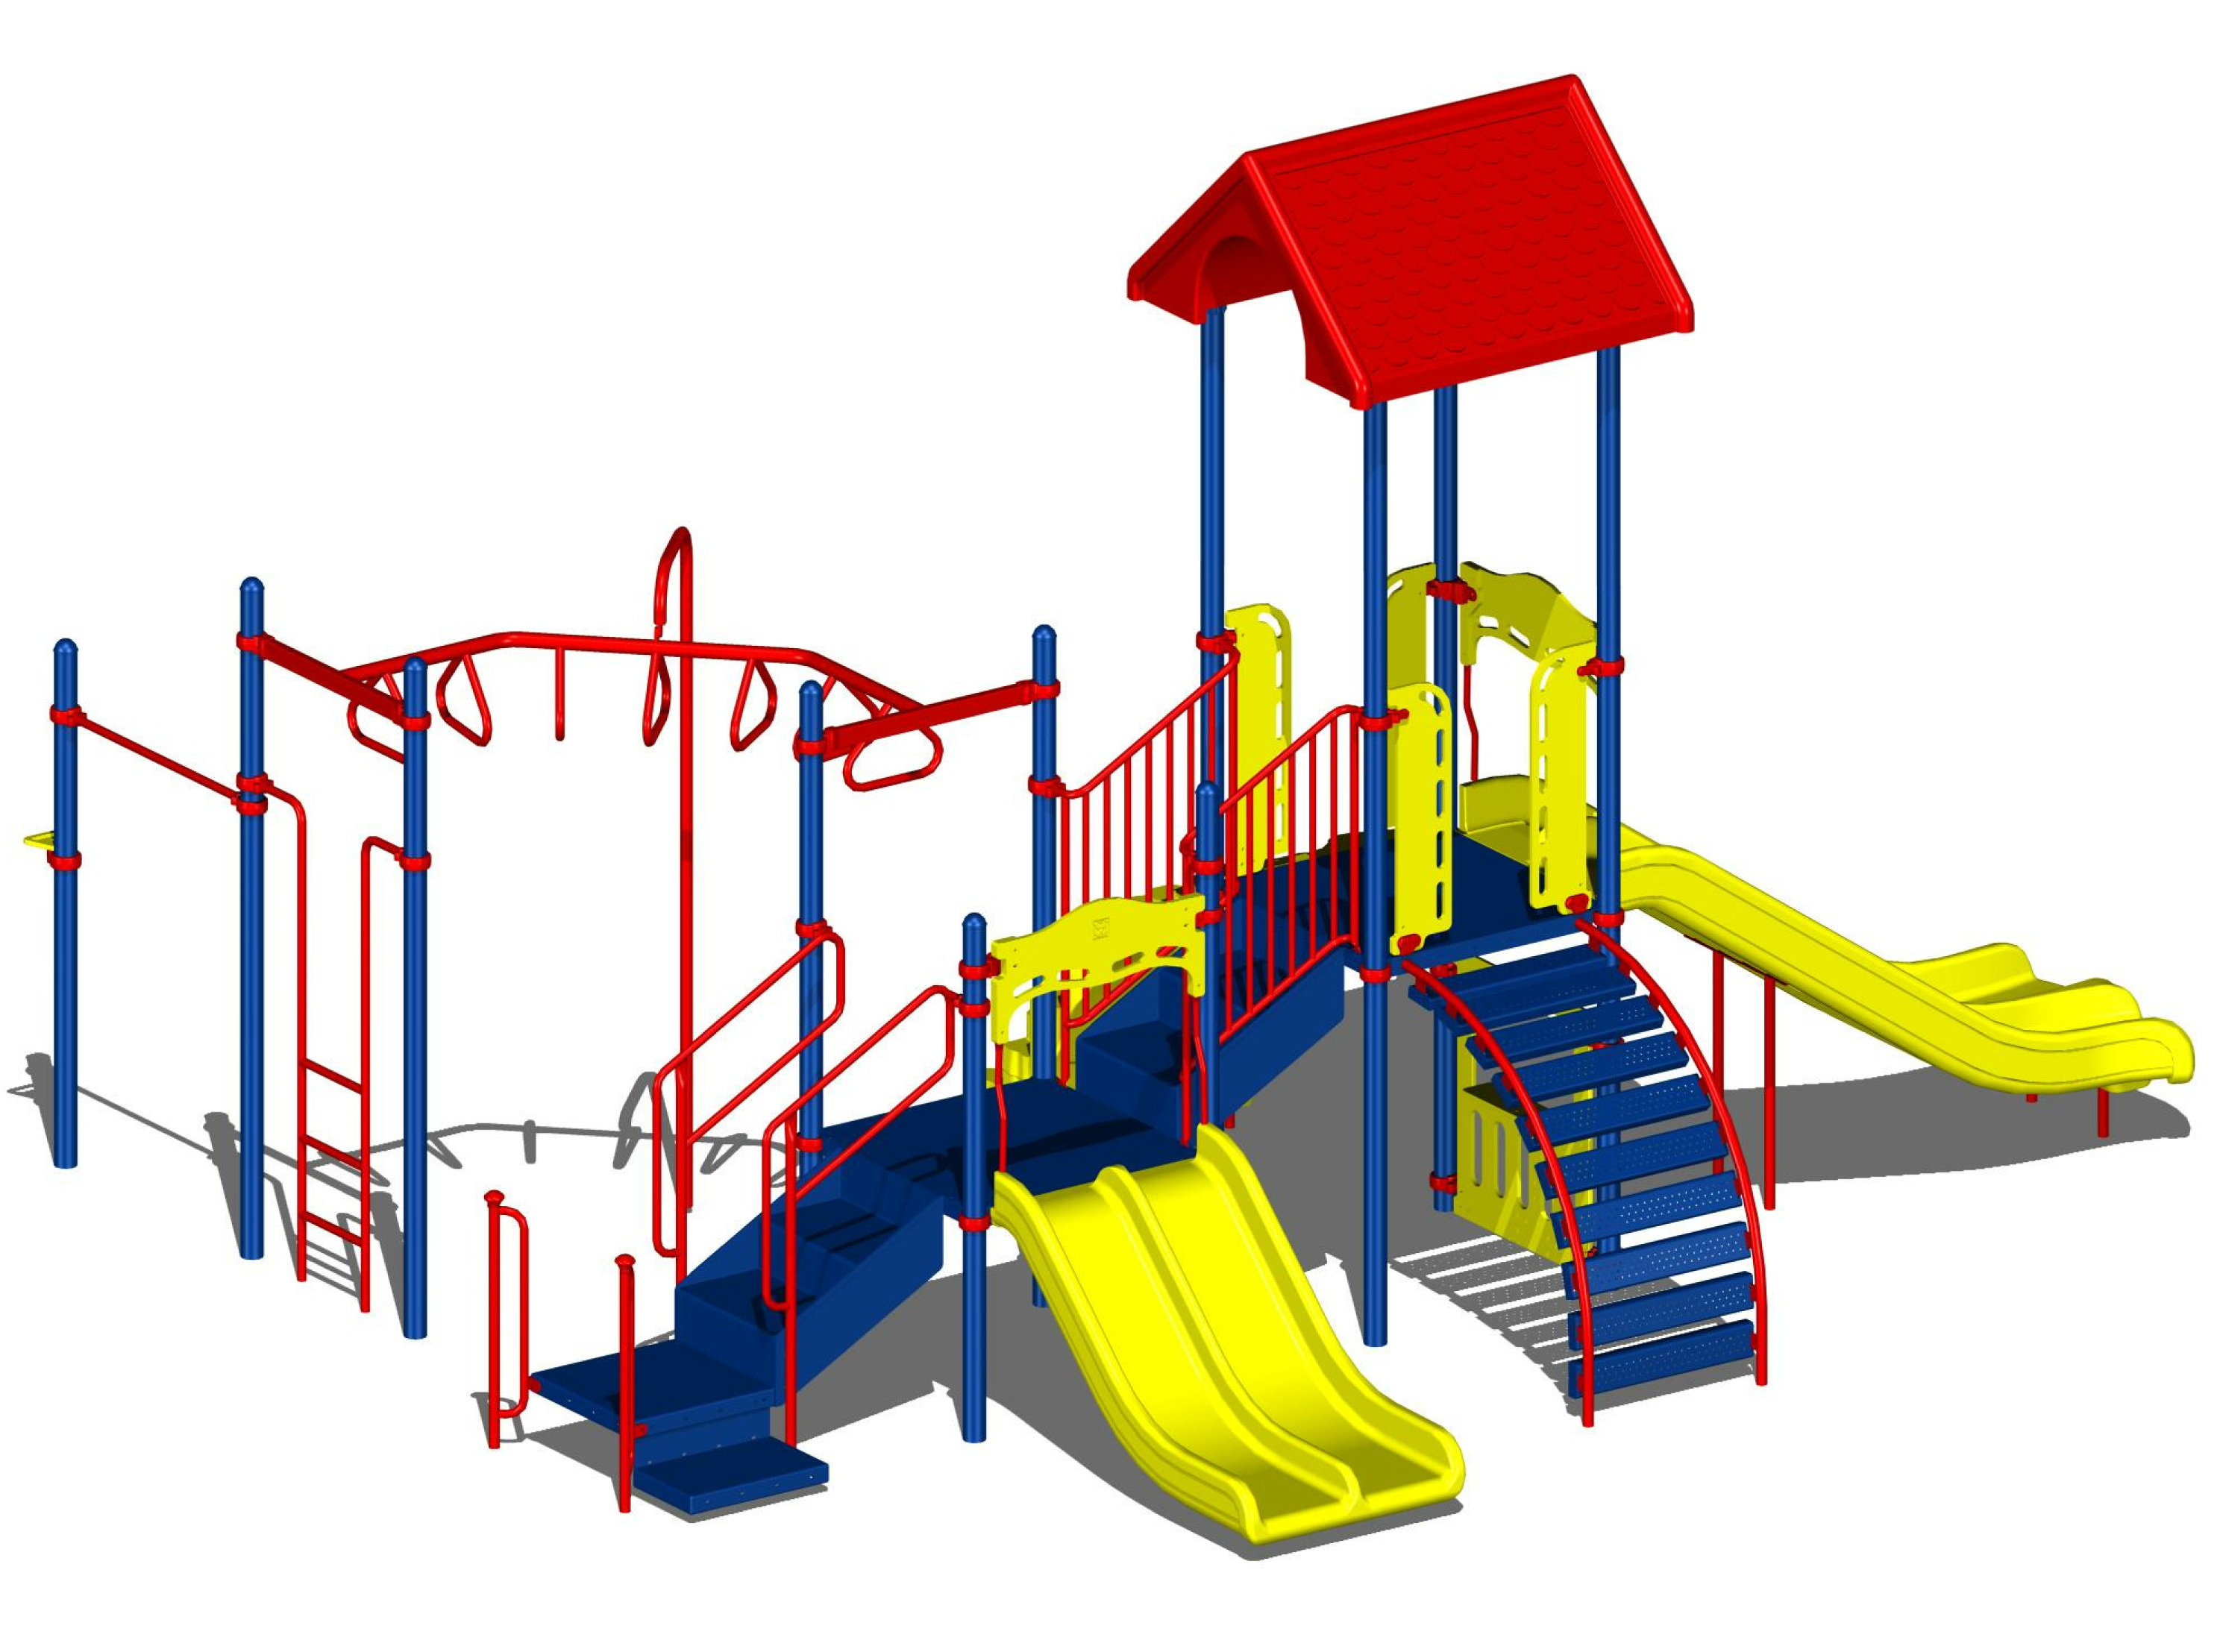 Play equipment clipart clip free stock Free Playground Equipment Pictures, Download Free Clip Art ... clip free stock